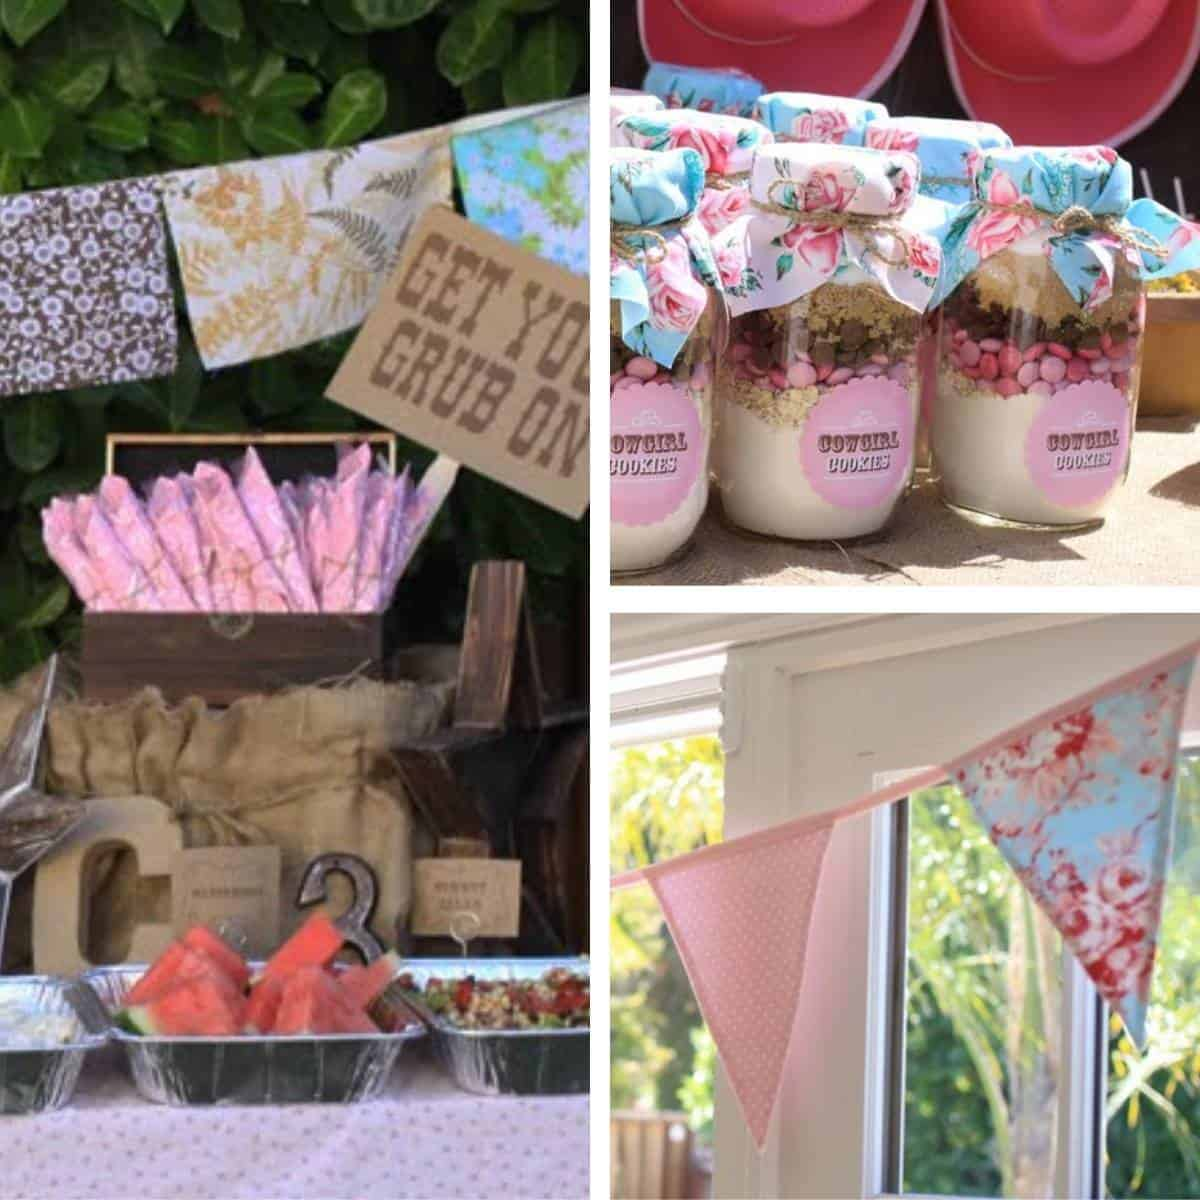 Collage of party decorations made with vintage fabrics, including buntings, tablecloths, and mason jar toppers